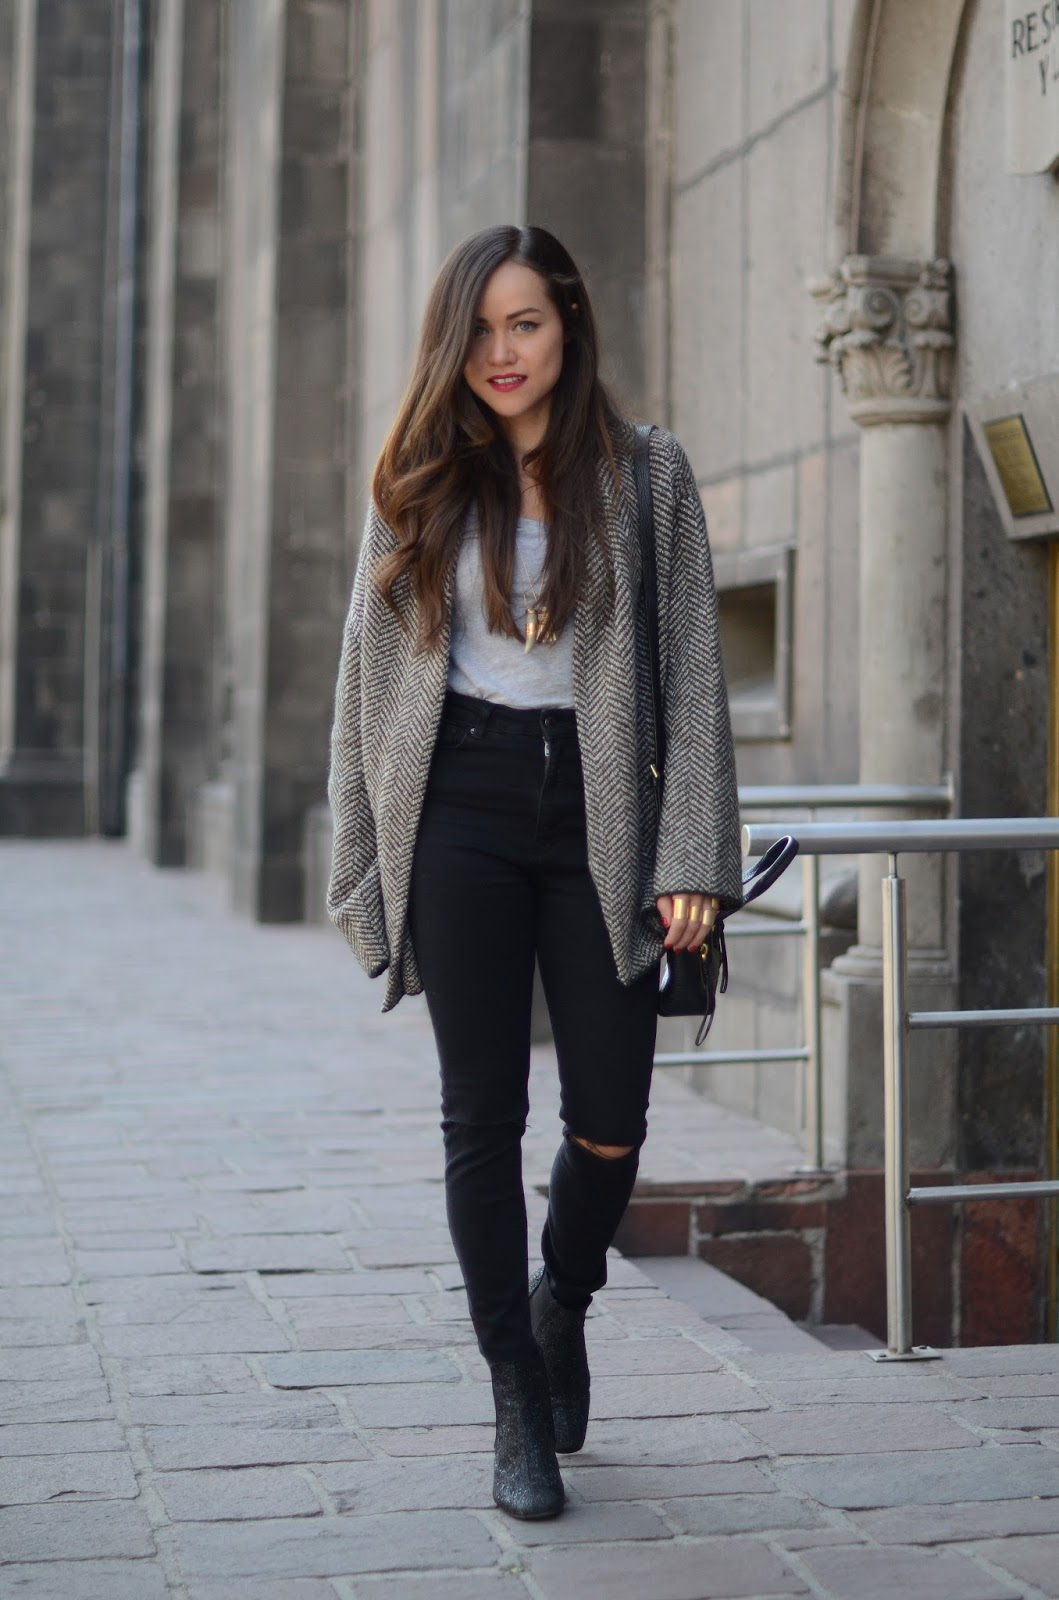 How to wear black ripped jeans! | MODA CAPITAL